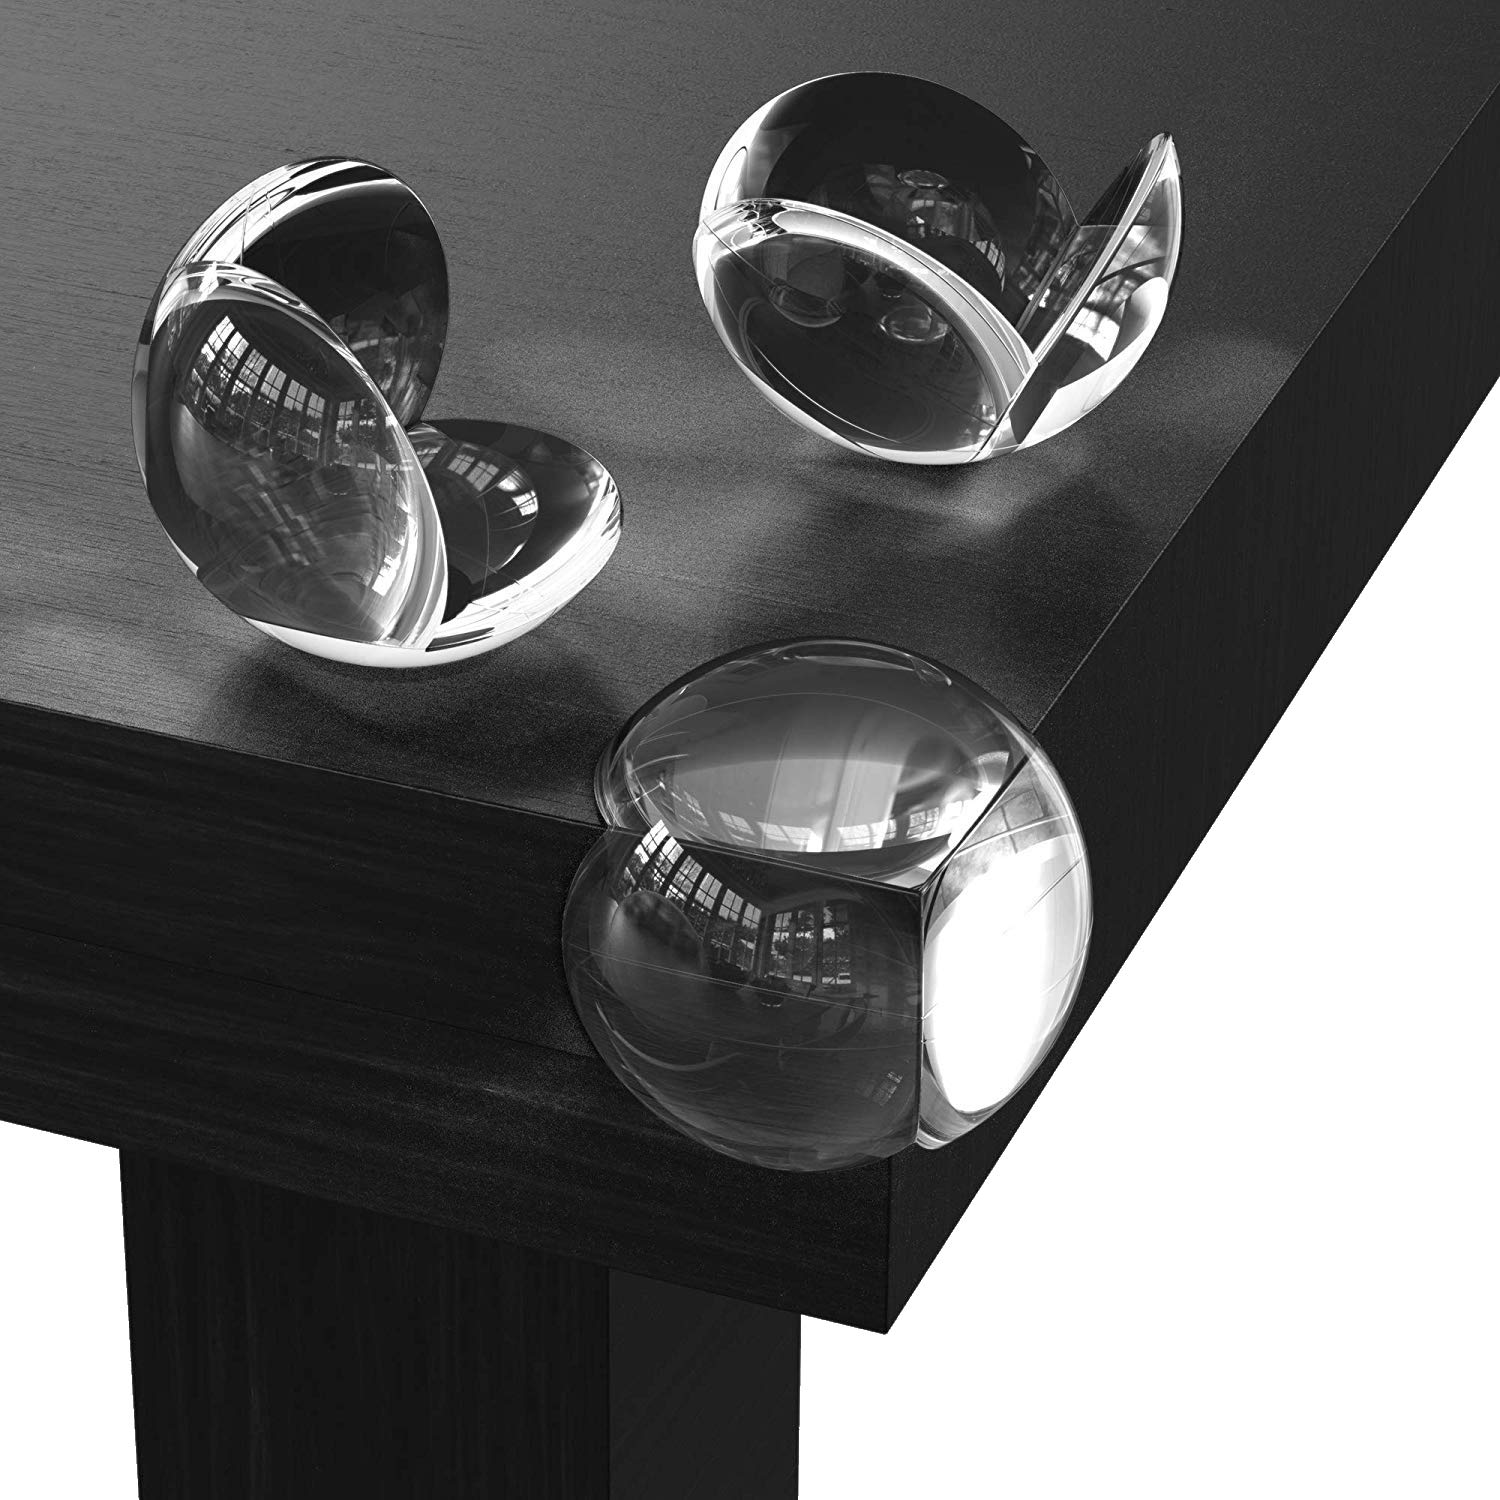 Top 9 Best Table Corner Protectors Reviews in 2021 5